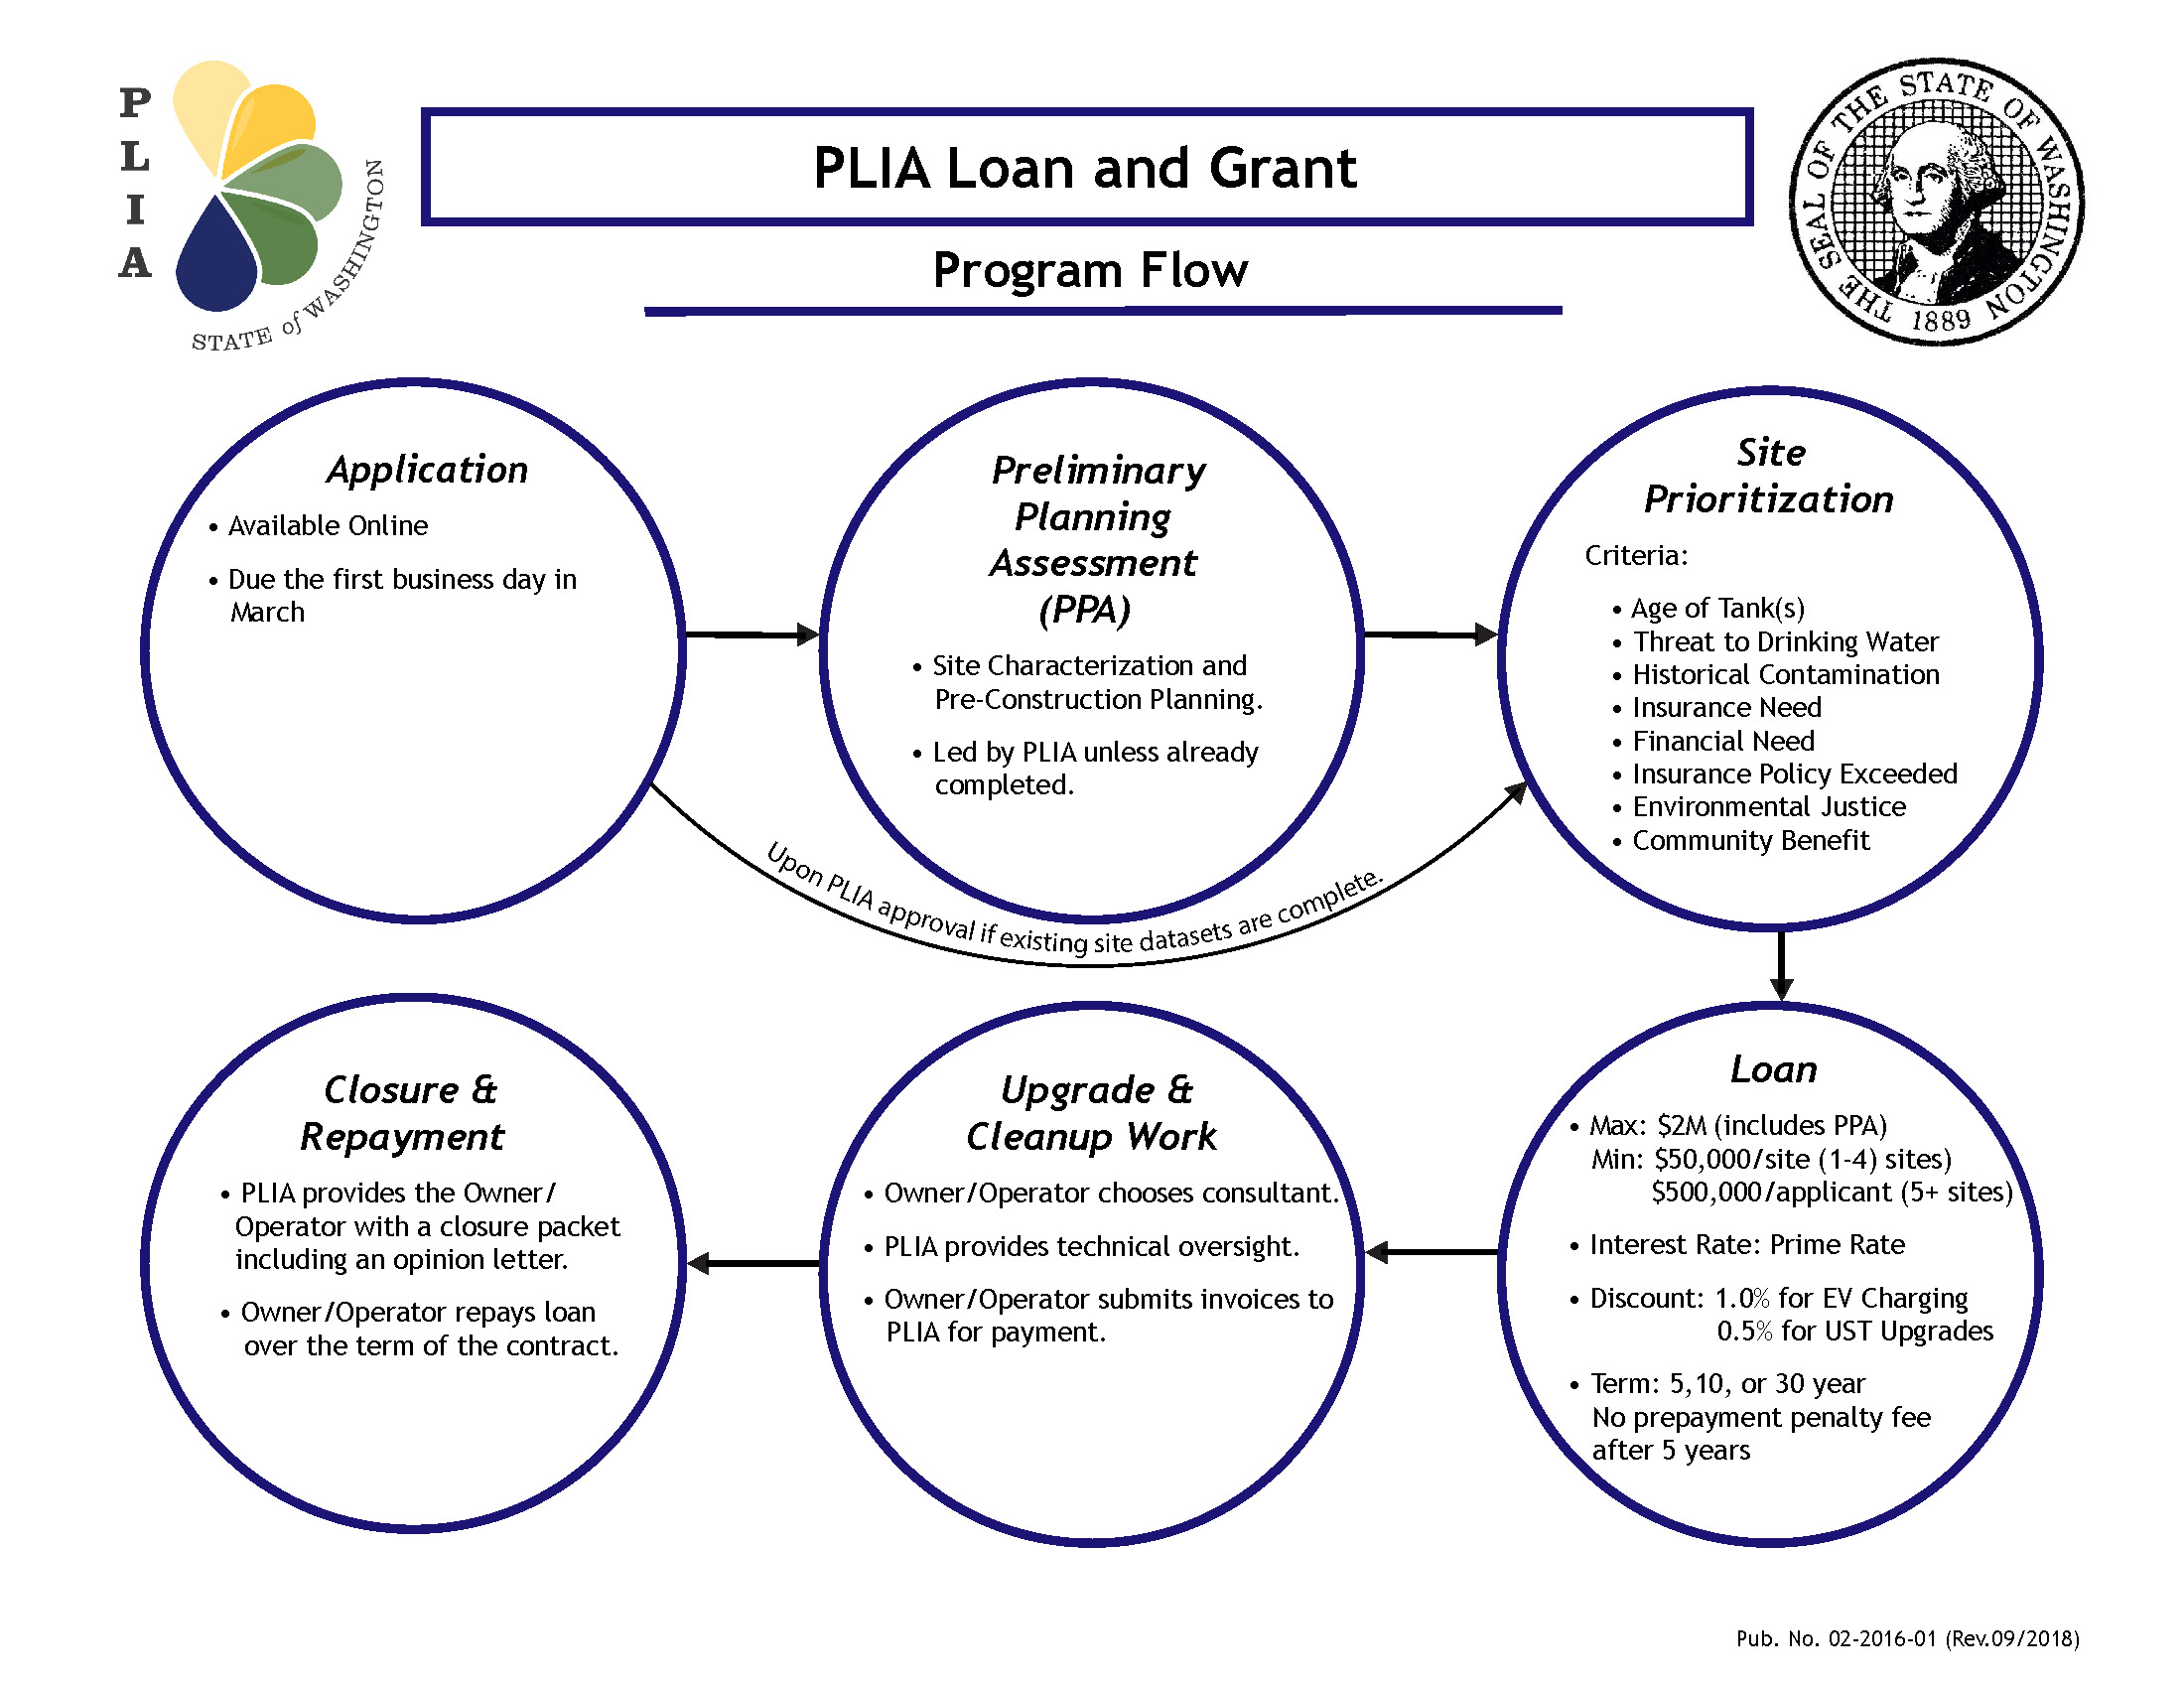 PLIA Loan and Grant Program Flow Chart